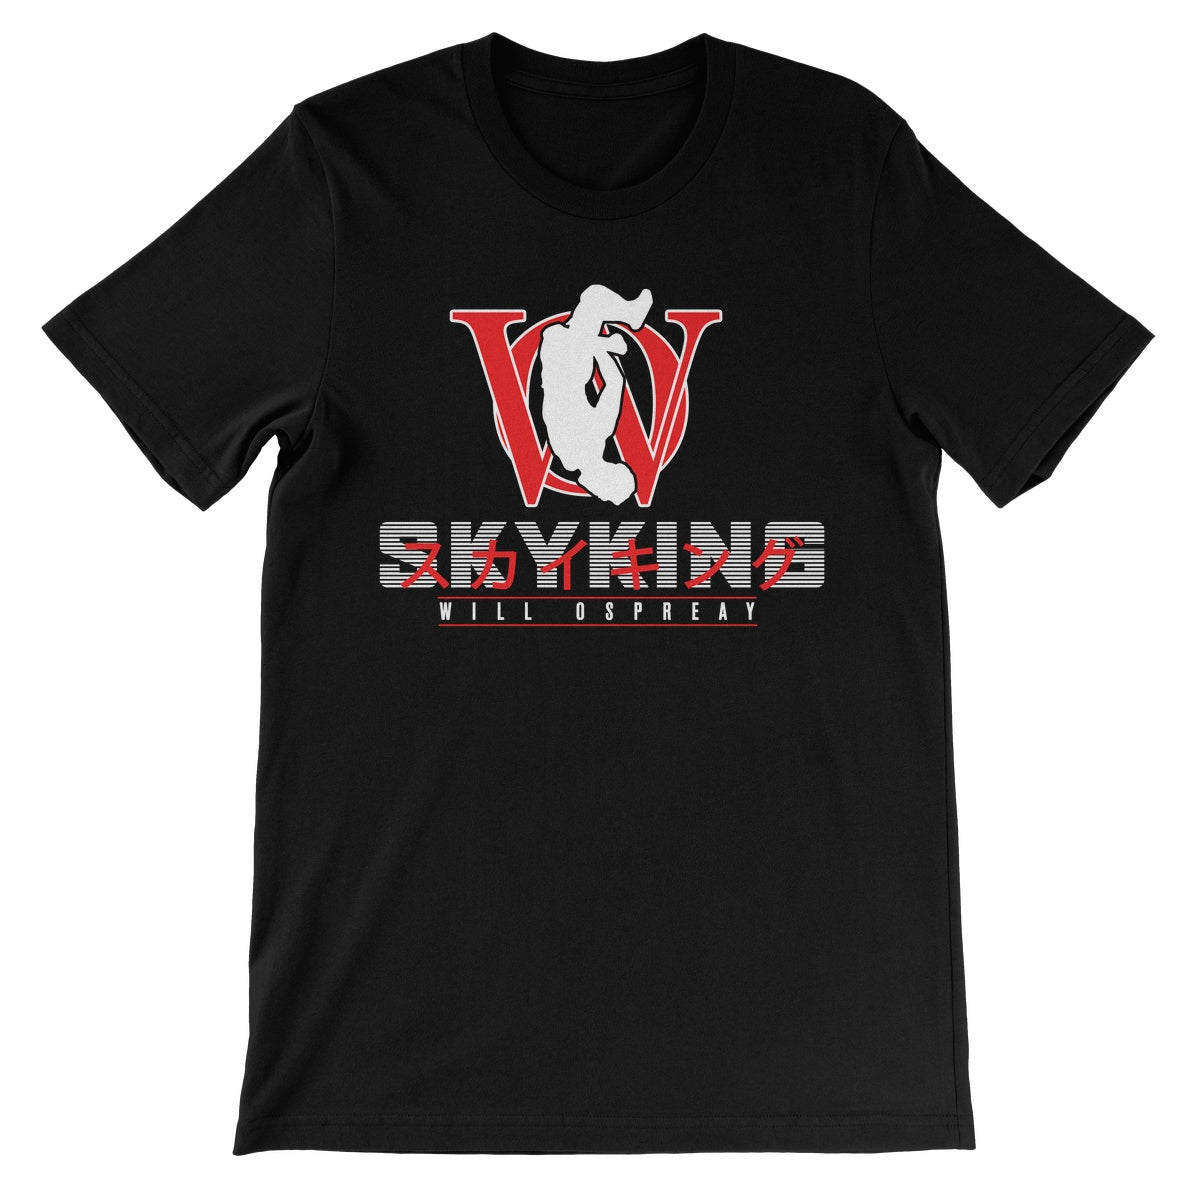 Will Ospreay SkyKing Unisex Short Sleeve T-Shirt